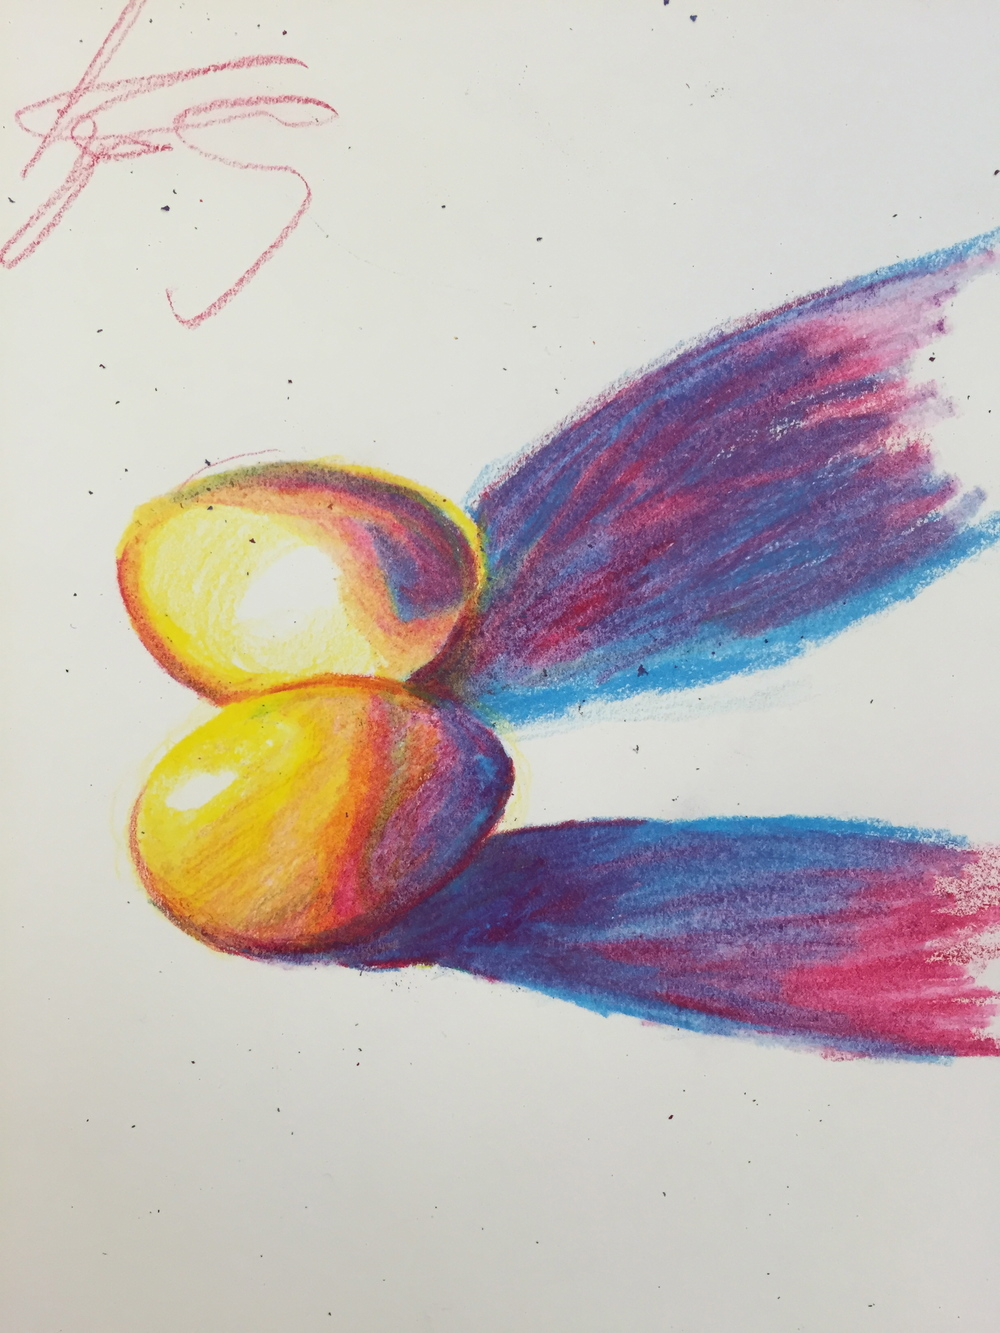 White On Primary Color Drawings Using Only Prismacolor Pencils In The Colors Cyan Magenta Yellow And Black Students Drew Eggs